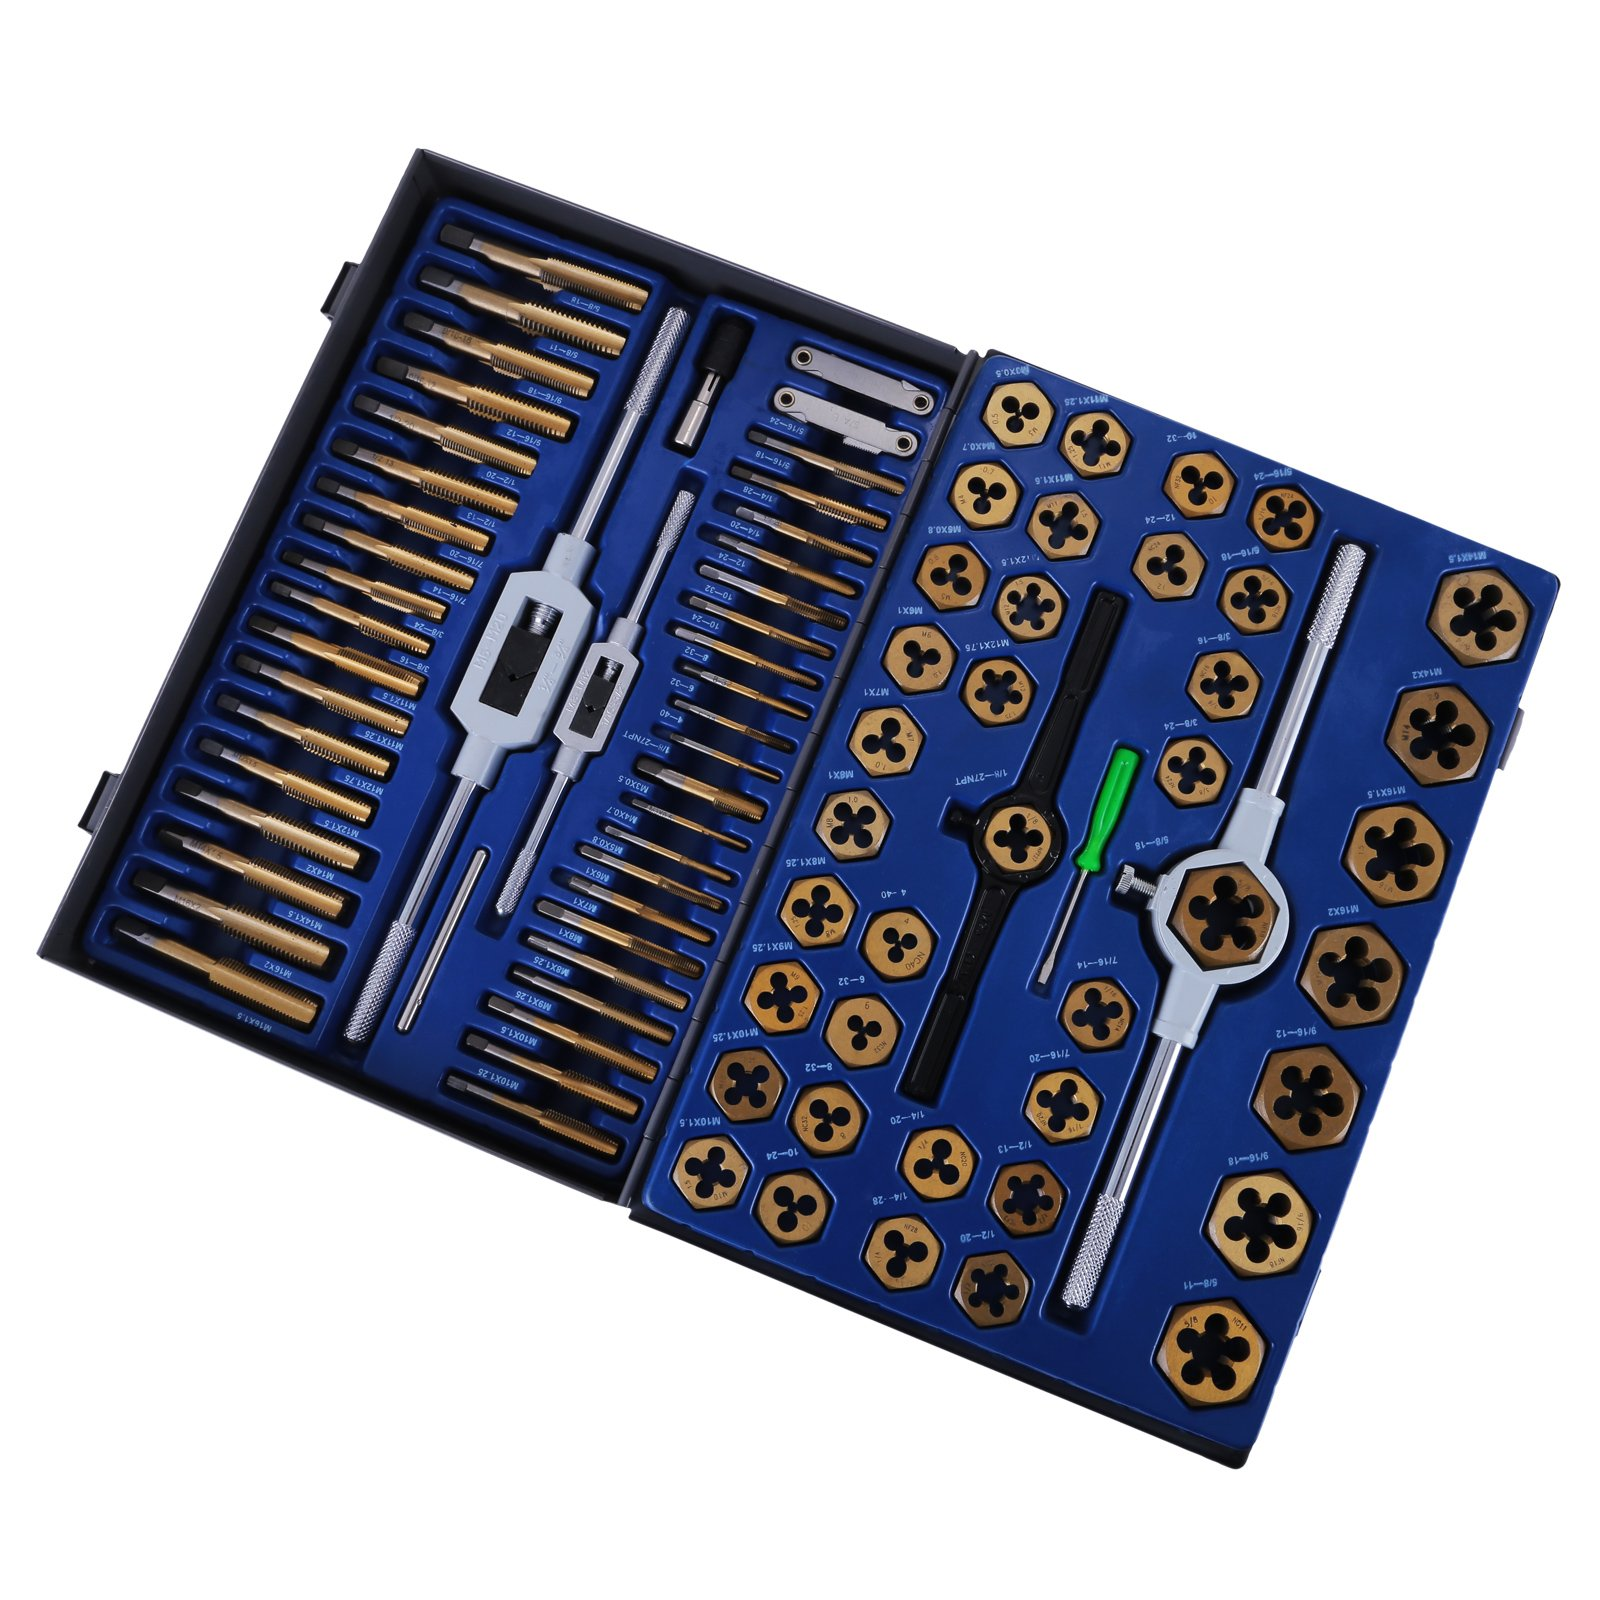 Happybuy Tap and Die Set 86PCS Combination SAE / Metric Tap and Die Kit for Cutting External and Internal Threads with Storage Case by Happybuy (Image #5)